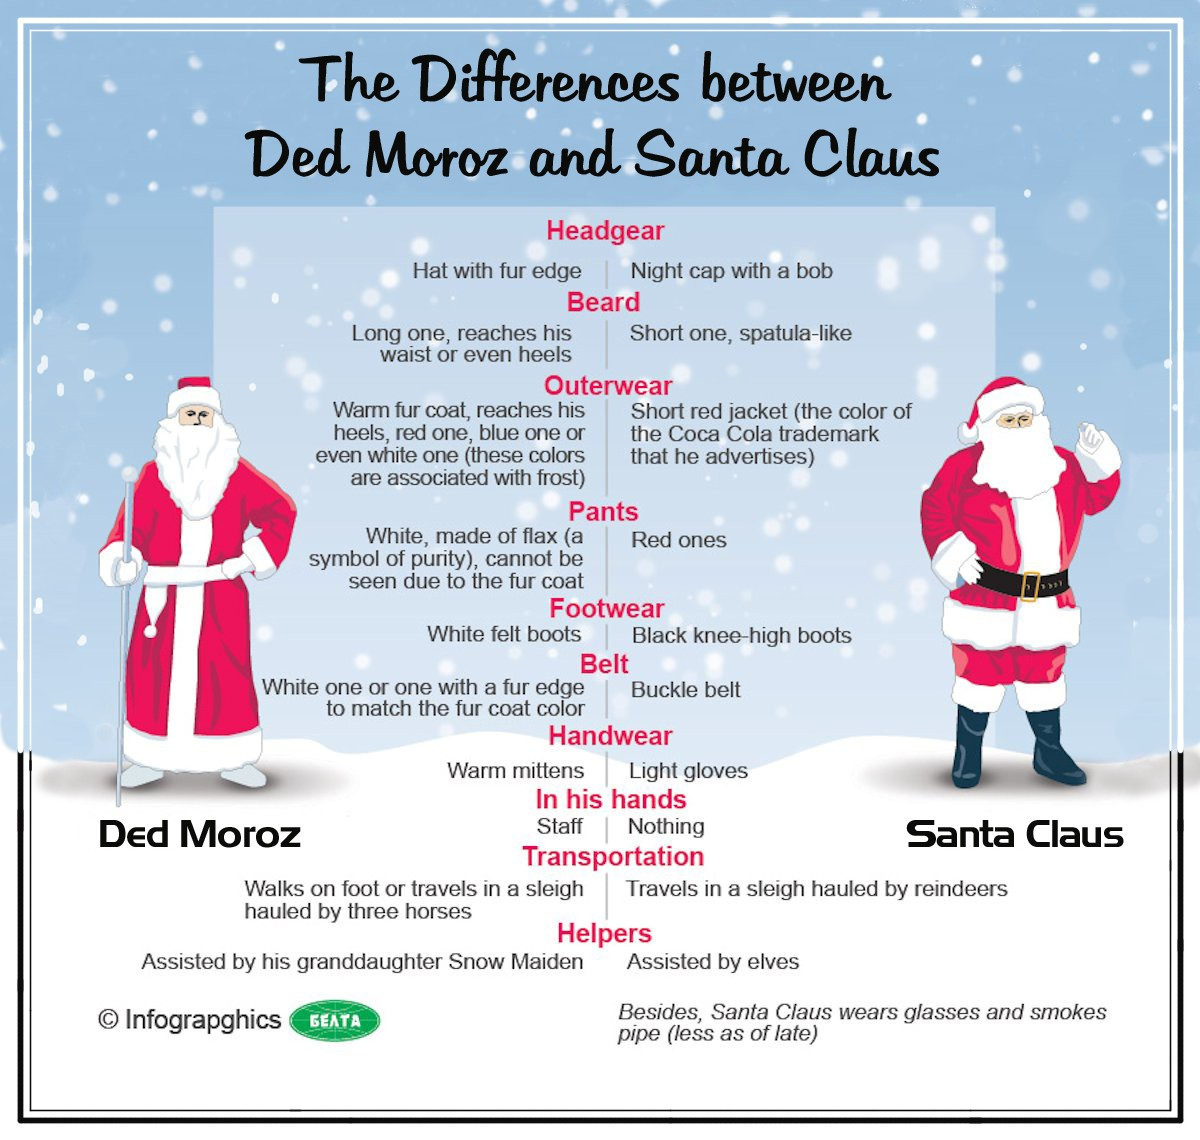 00 BelTA Infographics. The Differences Between Ded Moroz and Santa Claus. 2011